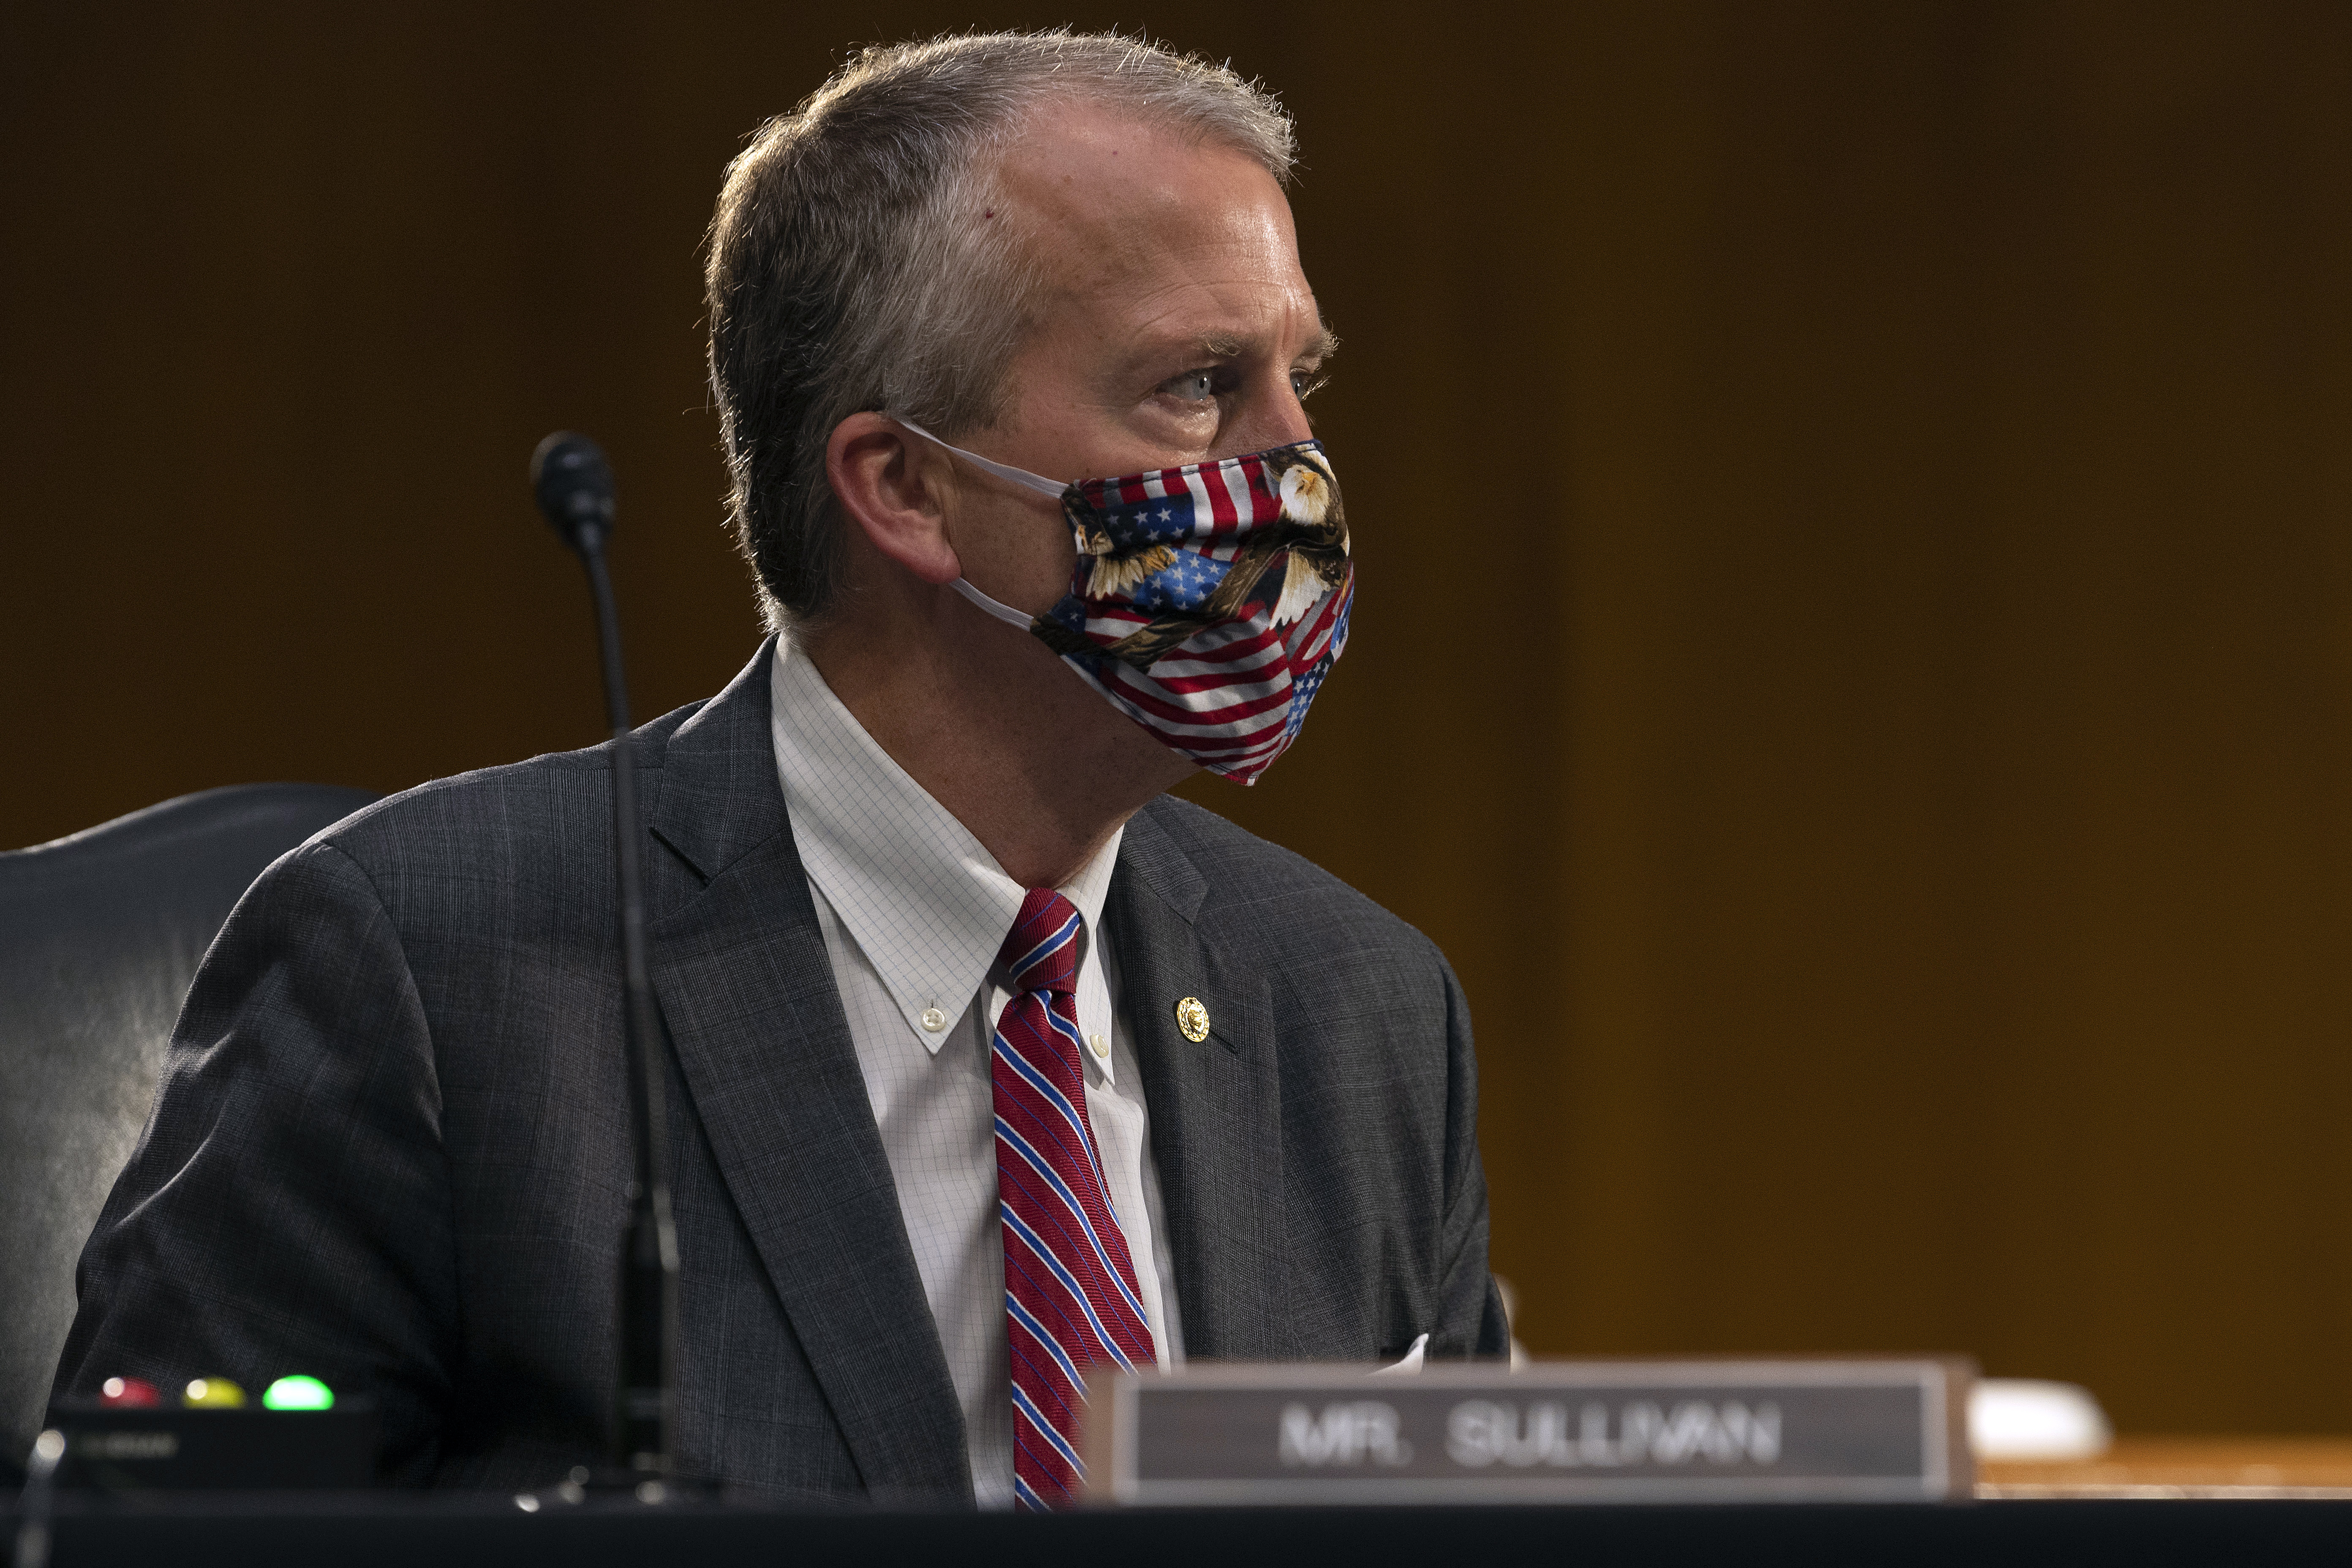 Sen. Dan Sullivan, R-Alaska, listens during a Senate Committee on Commerce, Science and Transportation hearing on  The State of the Aviation Industry: Examining the Impact of the COVID-19 Pandemic  on Capitol Hill in Washington, Wednesday, May 6, 2020.